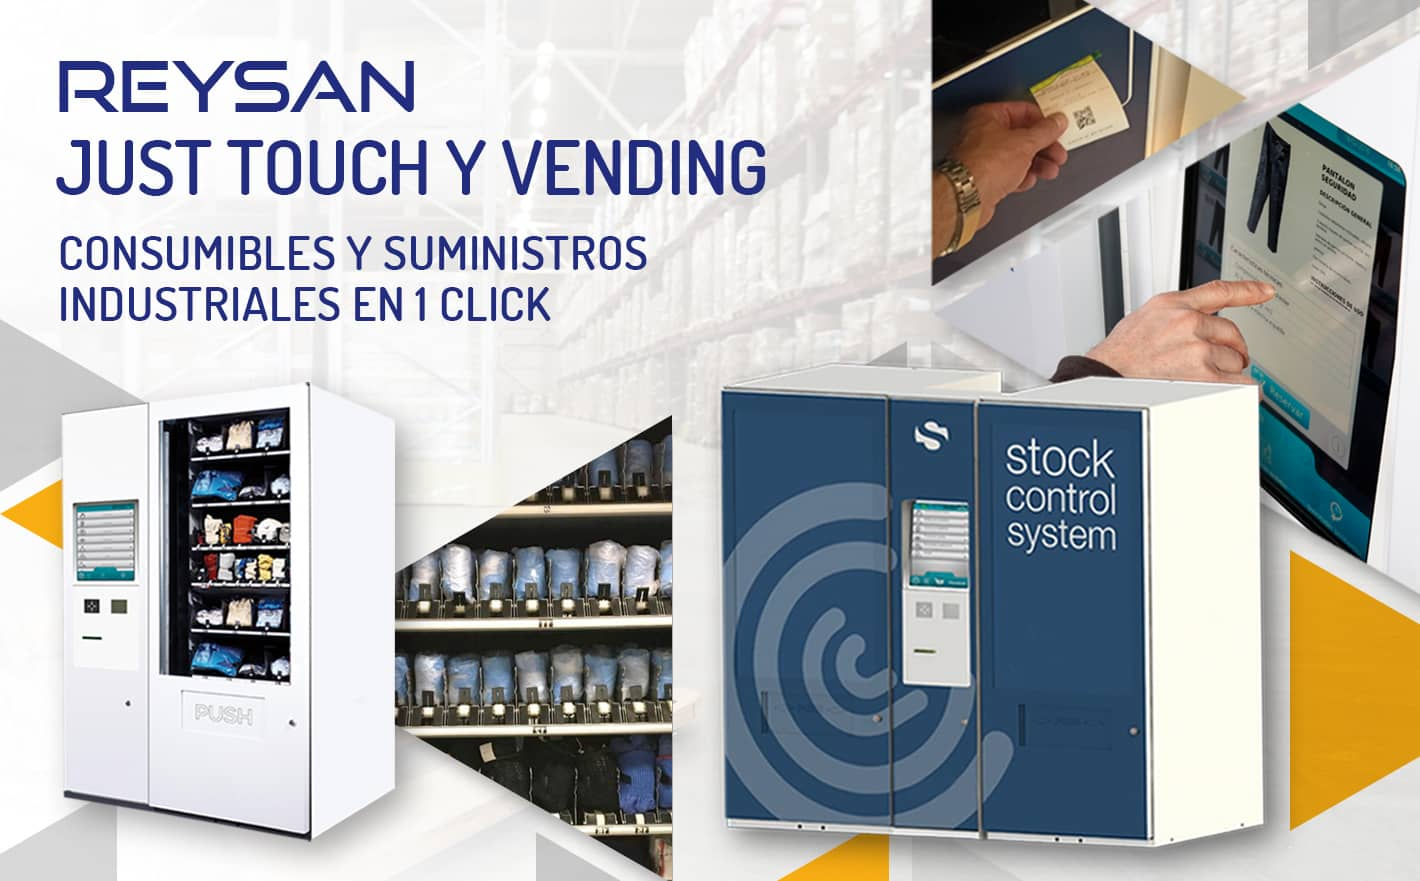 Reysan Just Touch y Vending